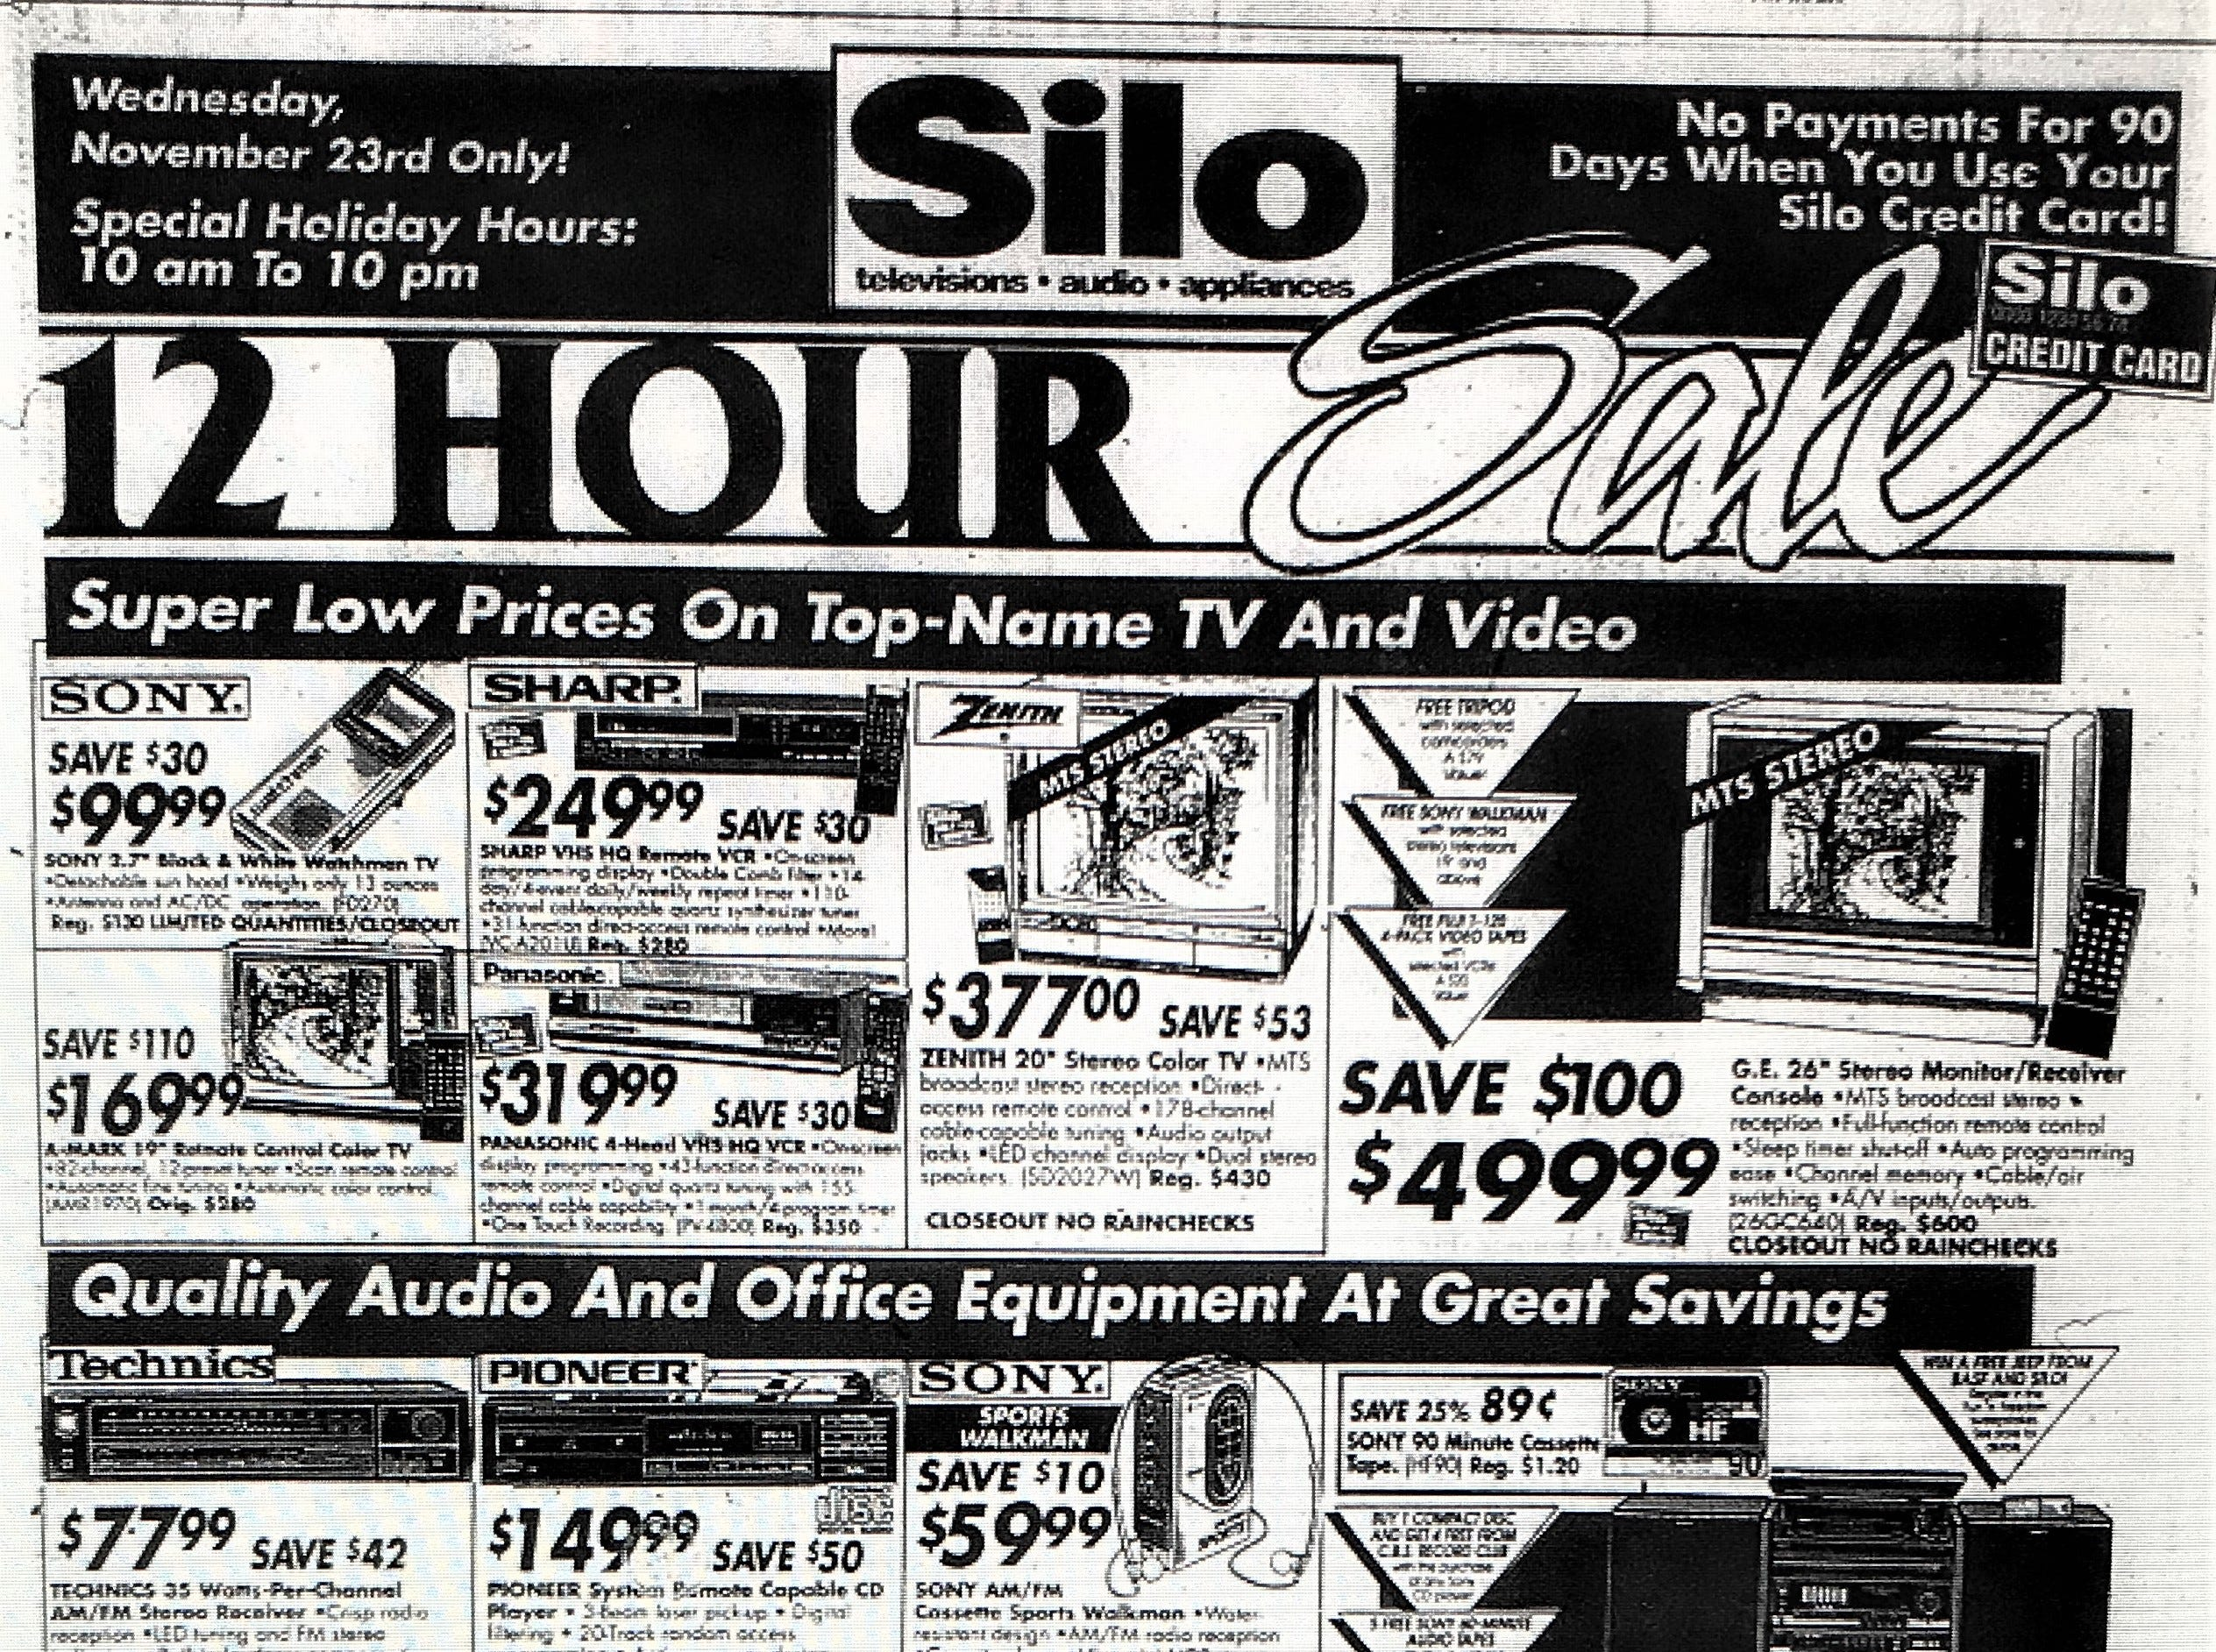 A 1988 Silo advertisement for a 12-hour electronics sale at York County locations the Wednesday before Thanksgiving. Silo, a electronic retail company ceased operations in 1995.